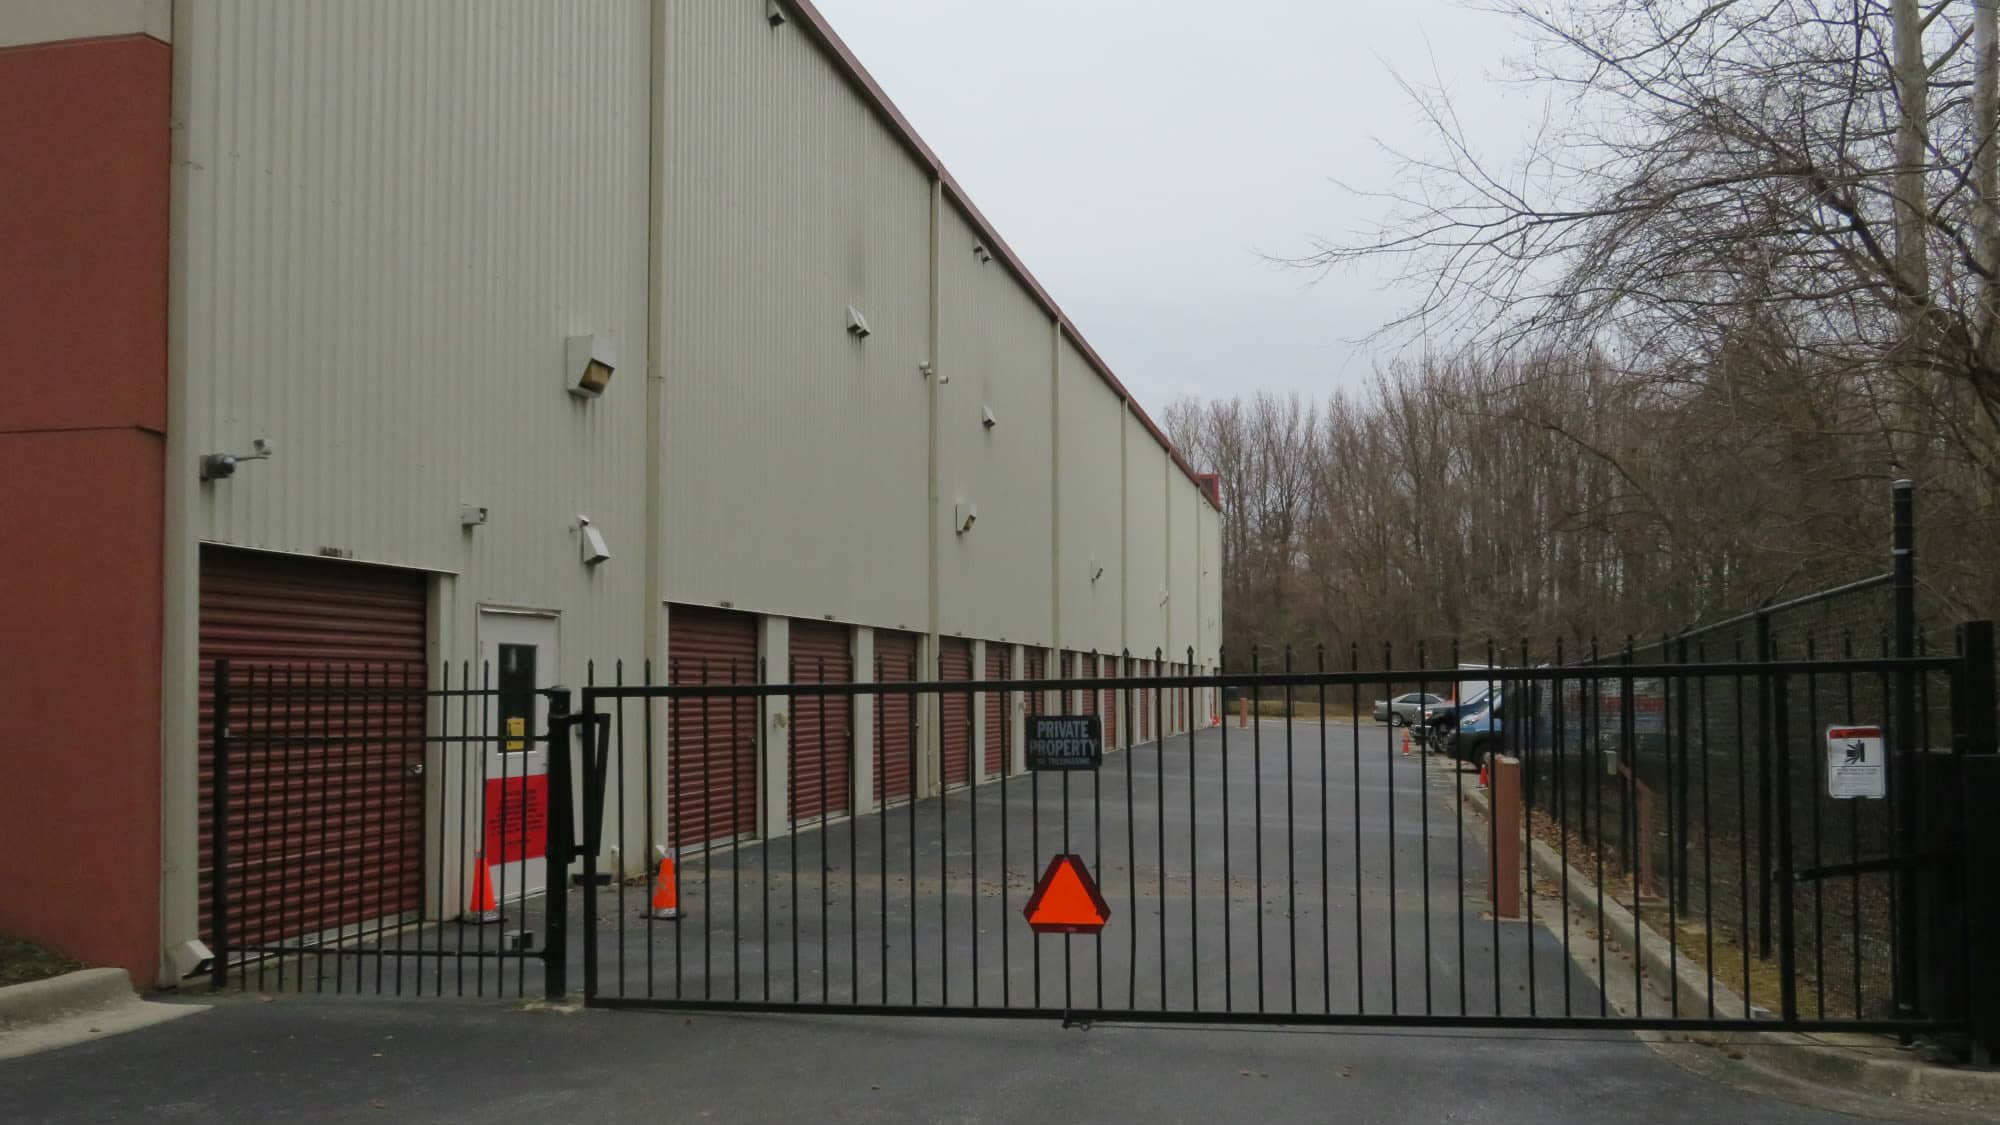 Gate at Odenton Self Storage in Odenton, Maryland